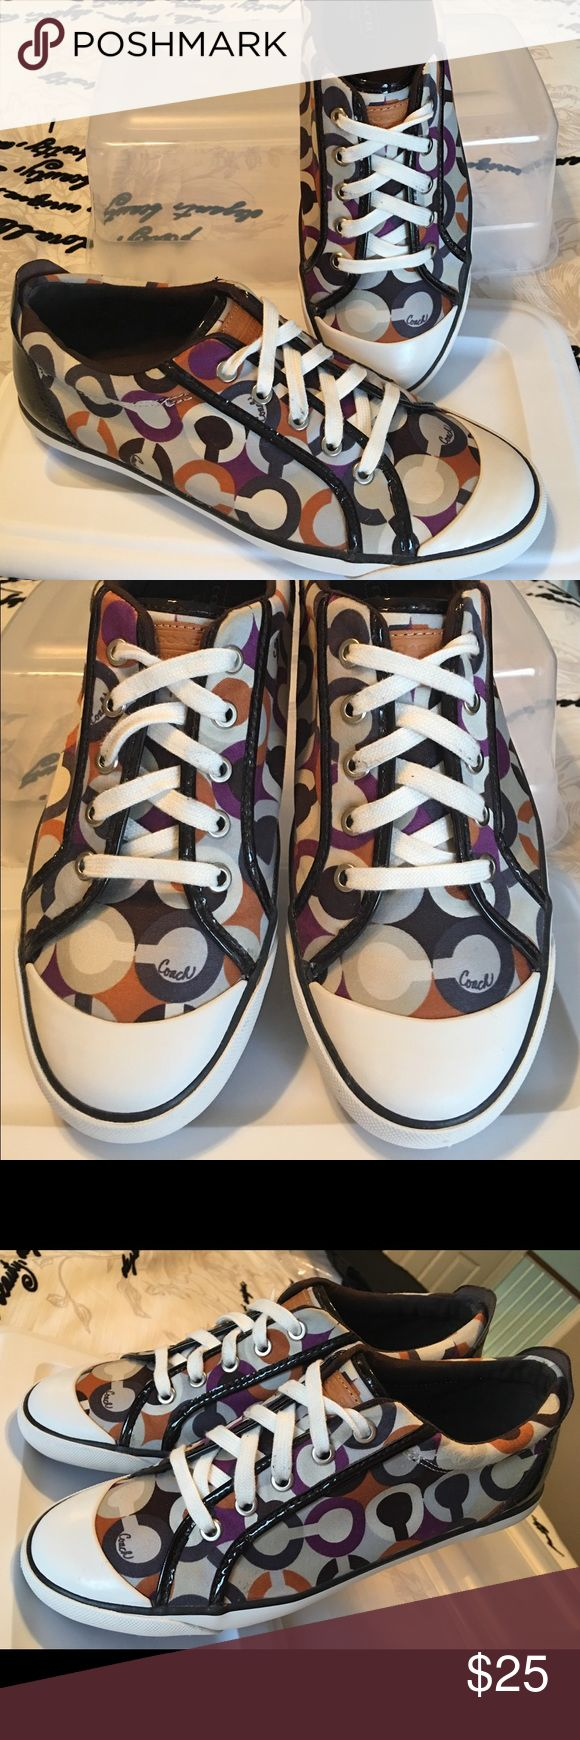 Coach Tennis shoes Great condition! Very comfy and lots of wear left as they were gently used. They also come from a smoke free home :) Coach Shoes Sneakers